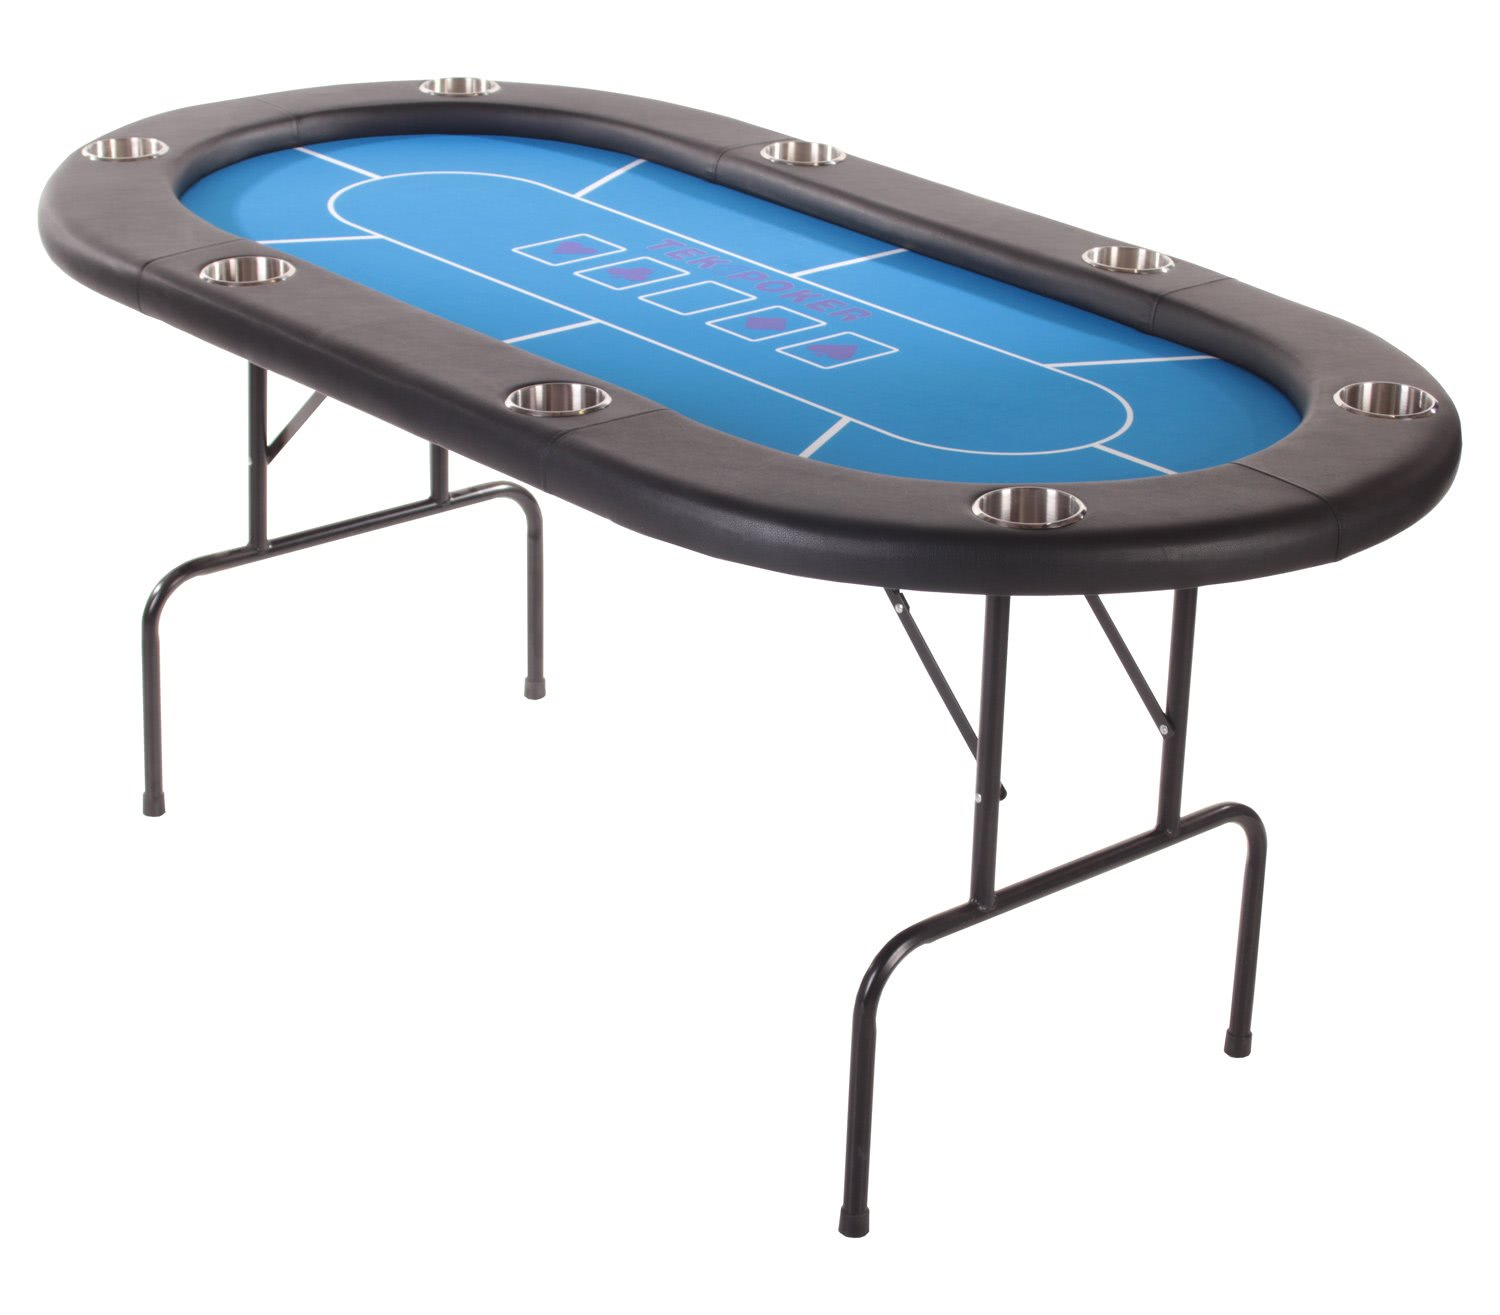 Tekscore Pro Folding Leg Poker Table Liberty Games